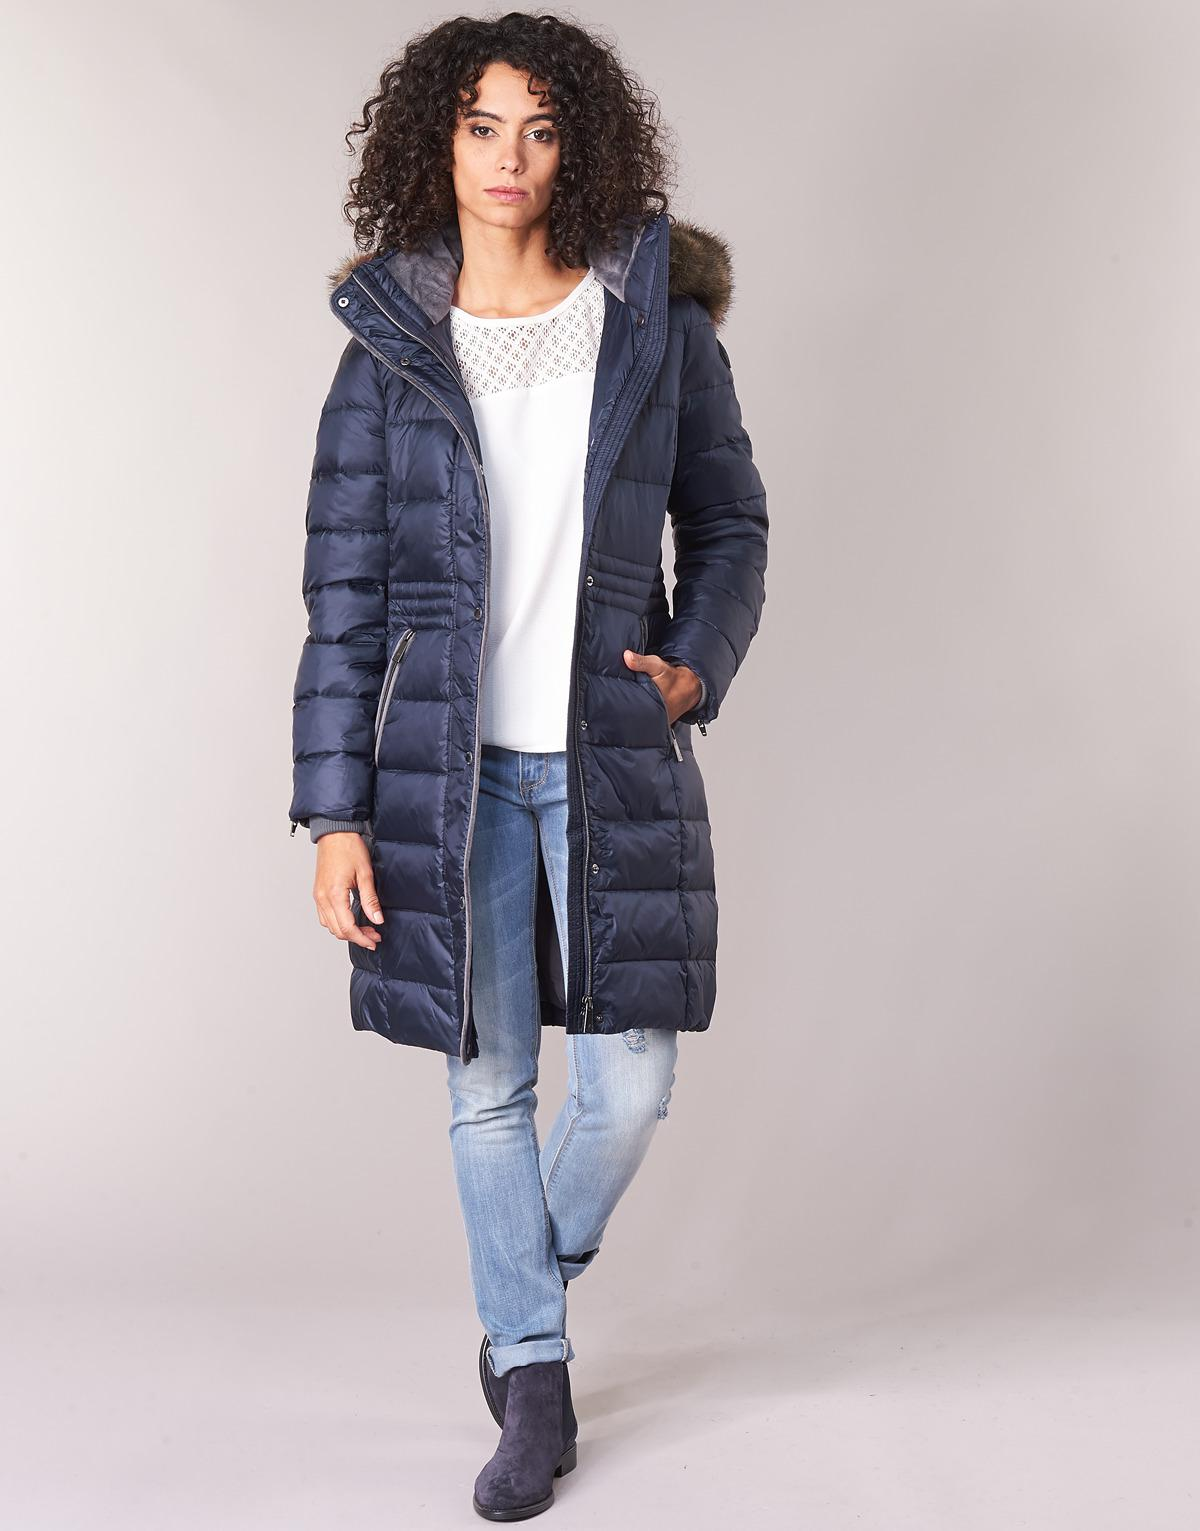 d5ec5a19b1 S.oliver Ambrymui Jacket in Blue - Lyst